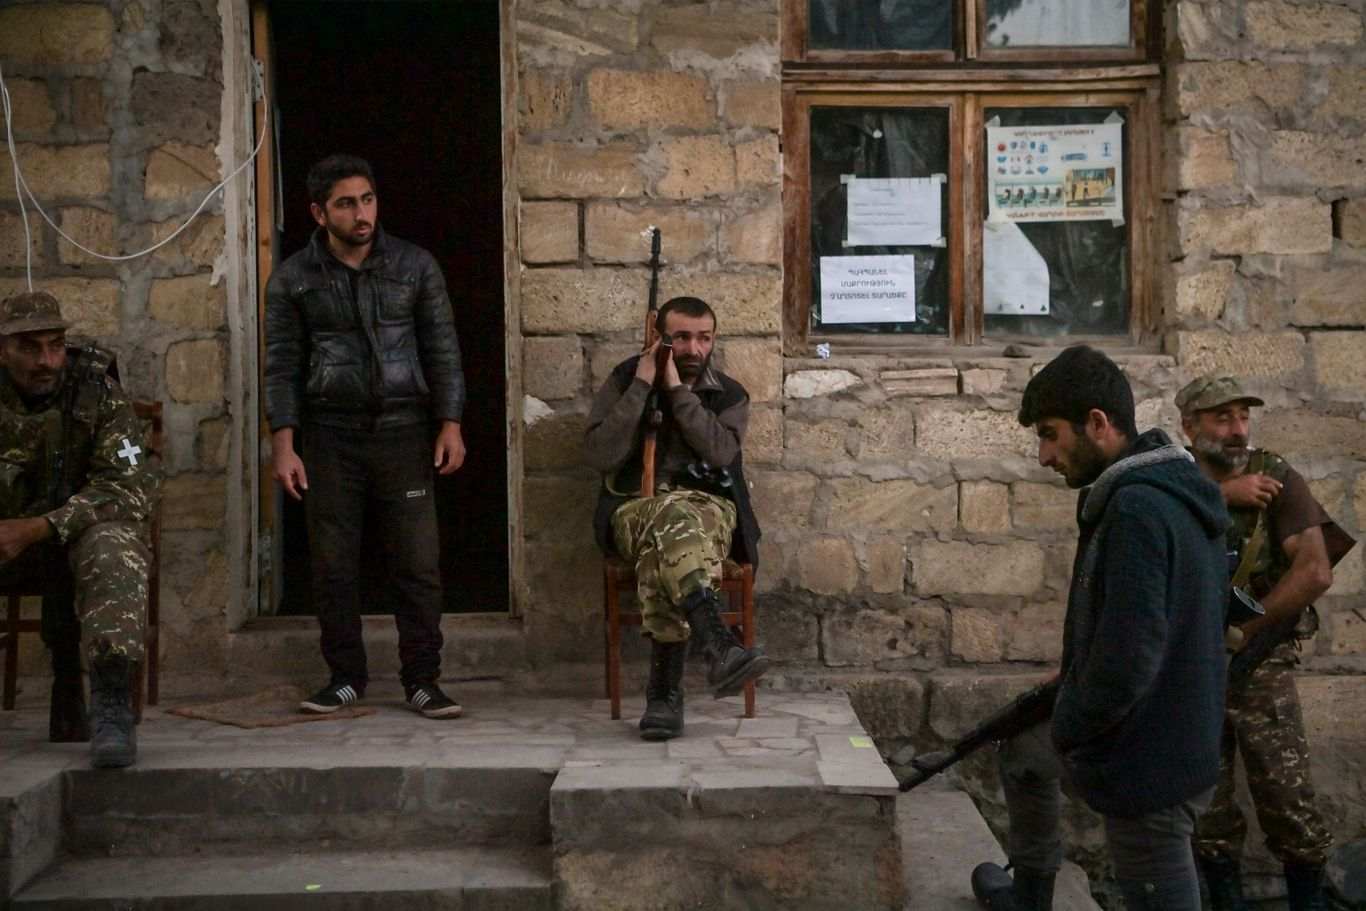 U.S.-brokered ceasefire collapses in Nagorno-Karabakh